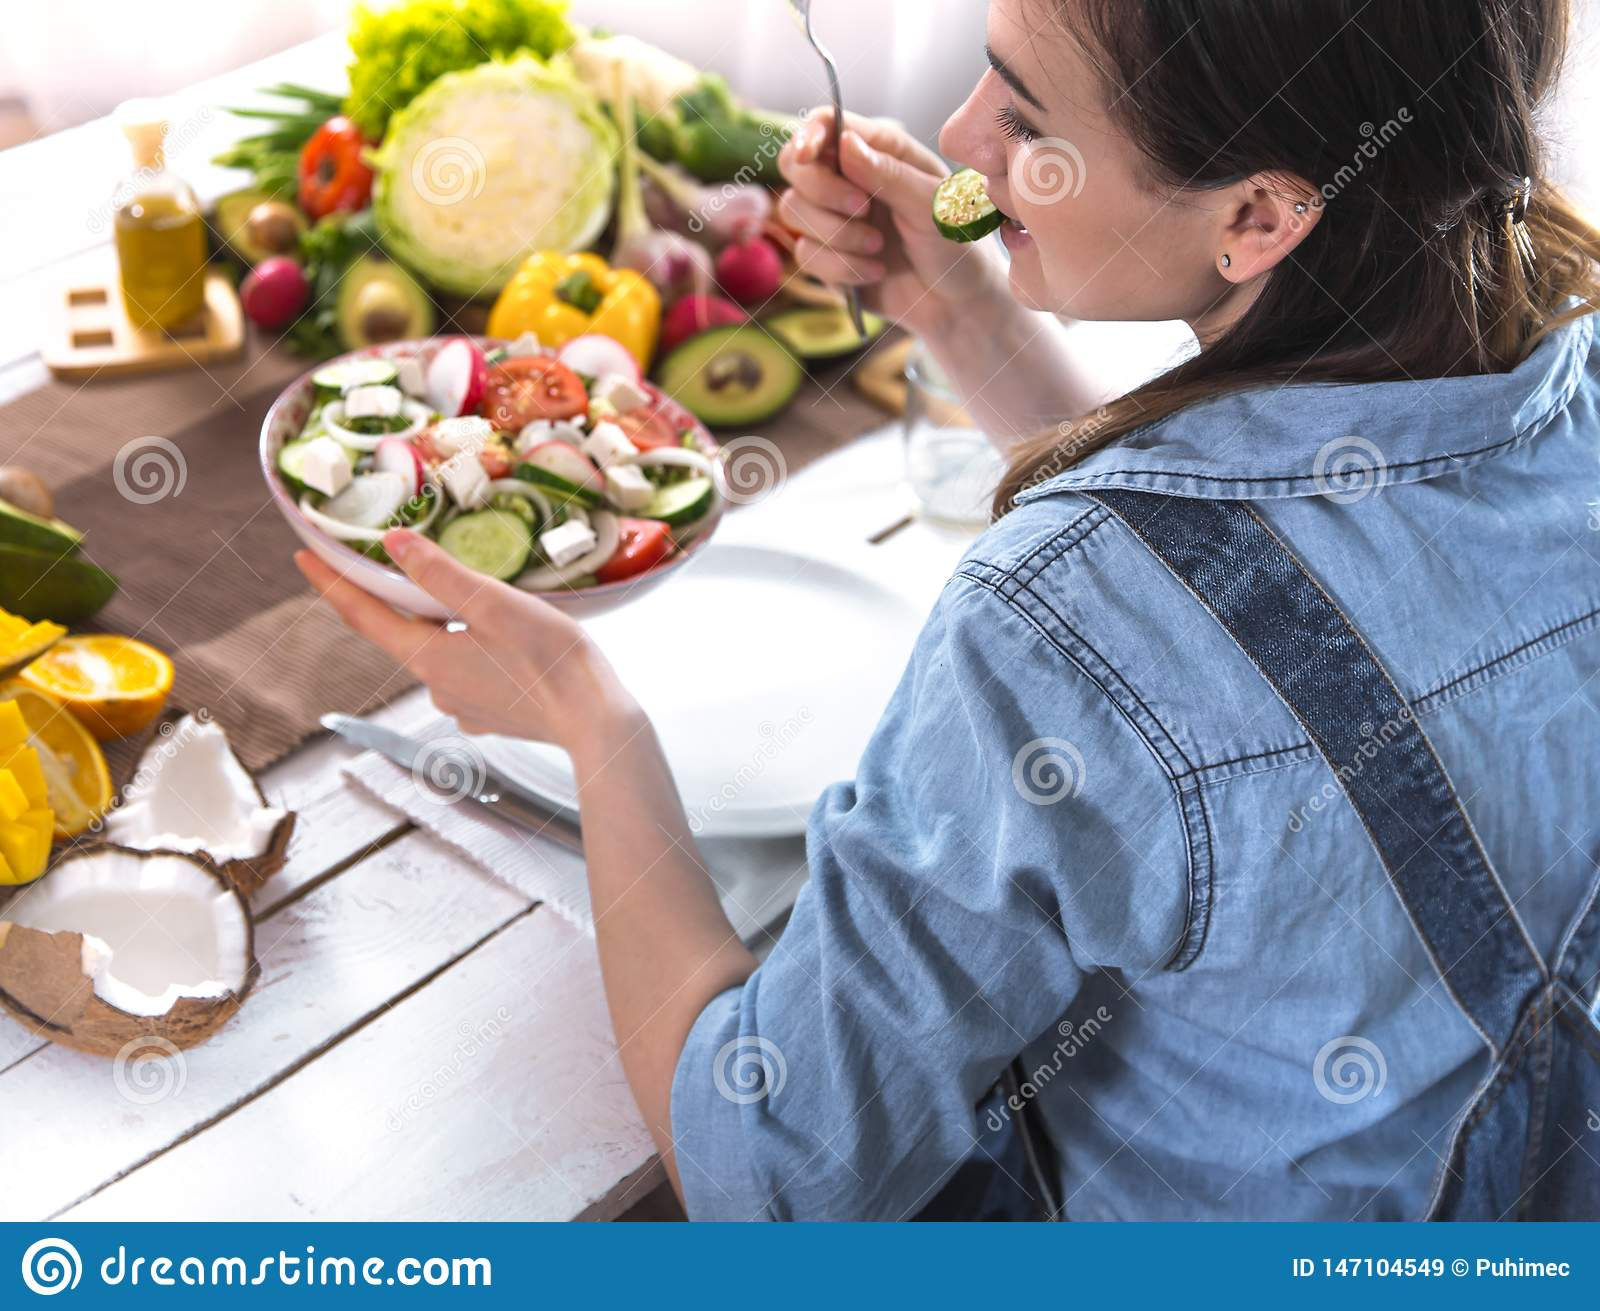 Woman at the dinner table eating salad, top view